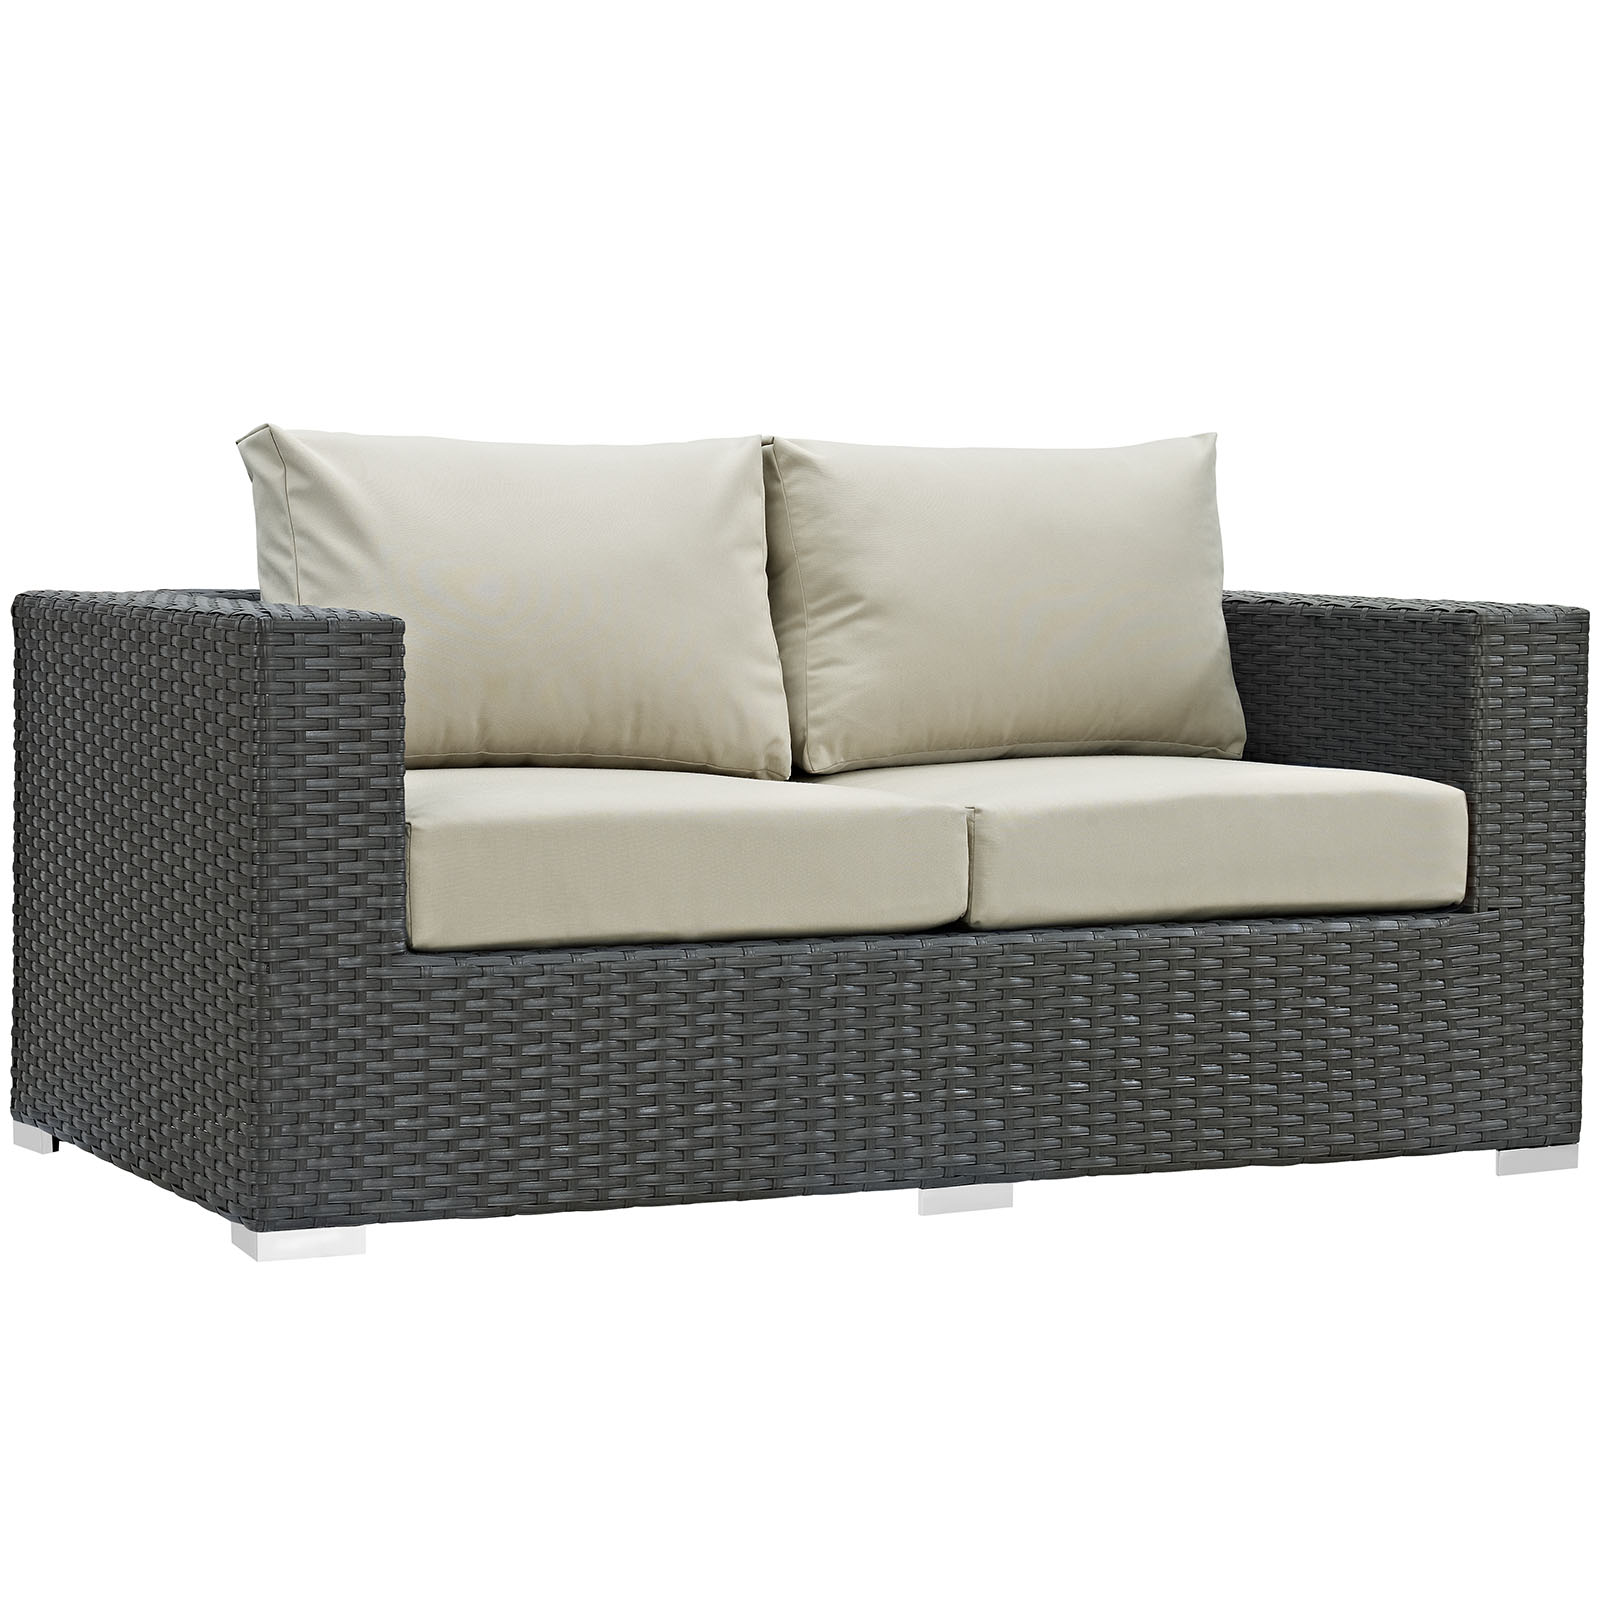 Modern Contemporary Urban Design Outdoor Patio Balcony Loveseat Sofa, Beige, Rattan